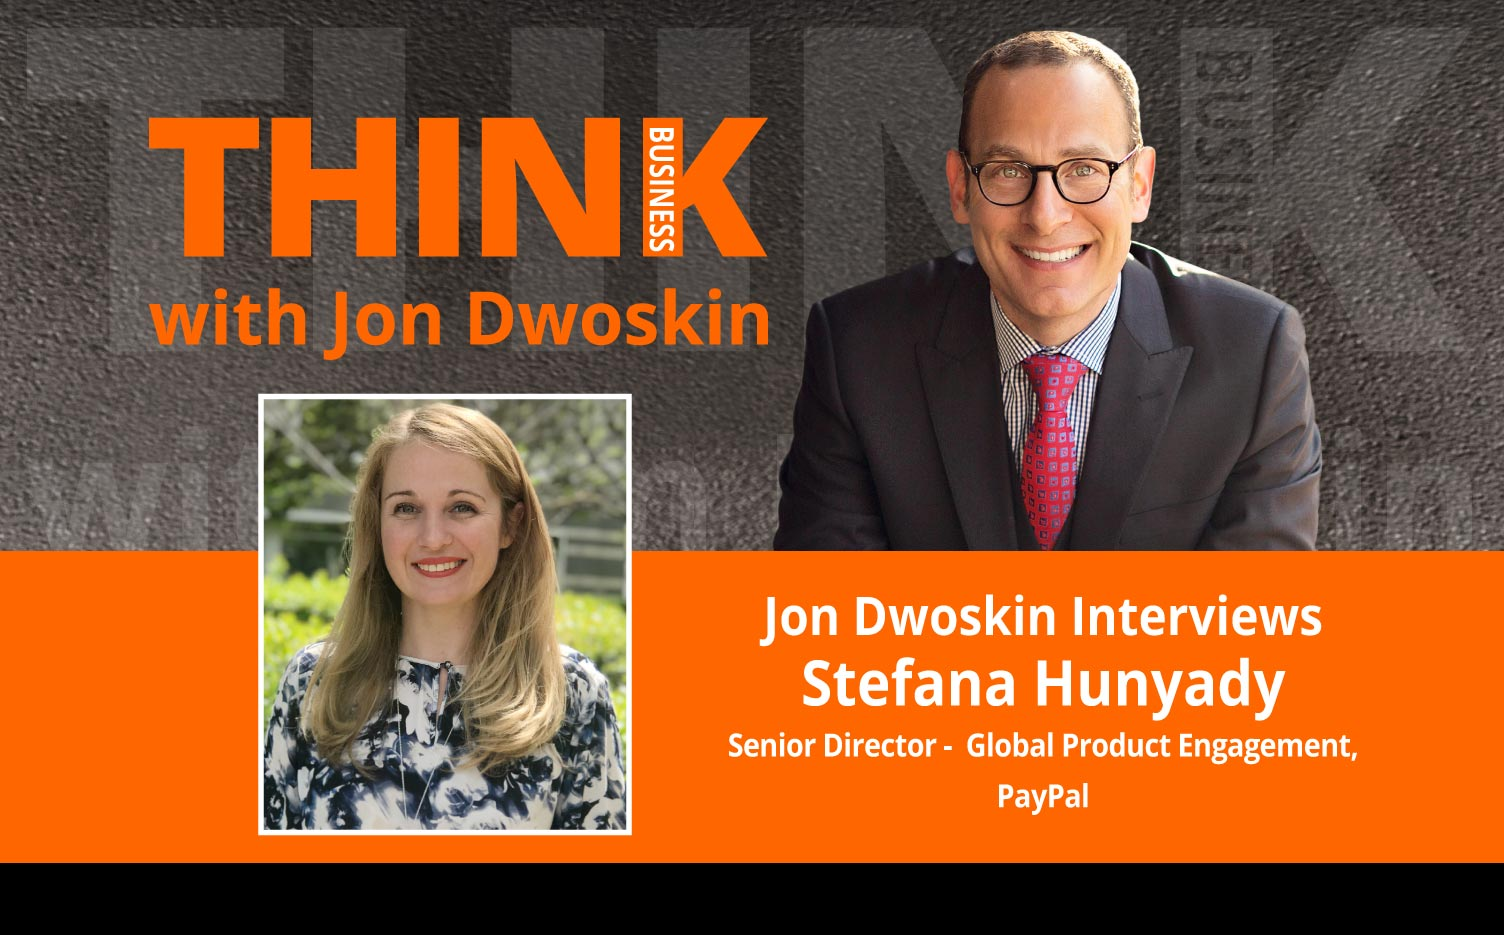 THINK Business: Jon Dwoskin Interviews Stefana Hunyady, Sr Director - Global Product Engagement, Paypal